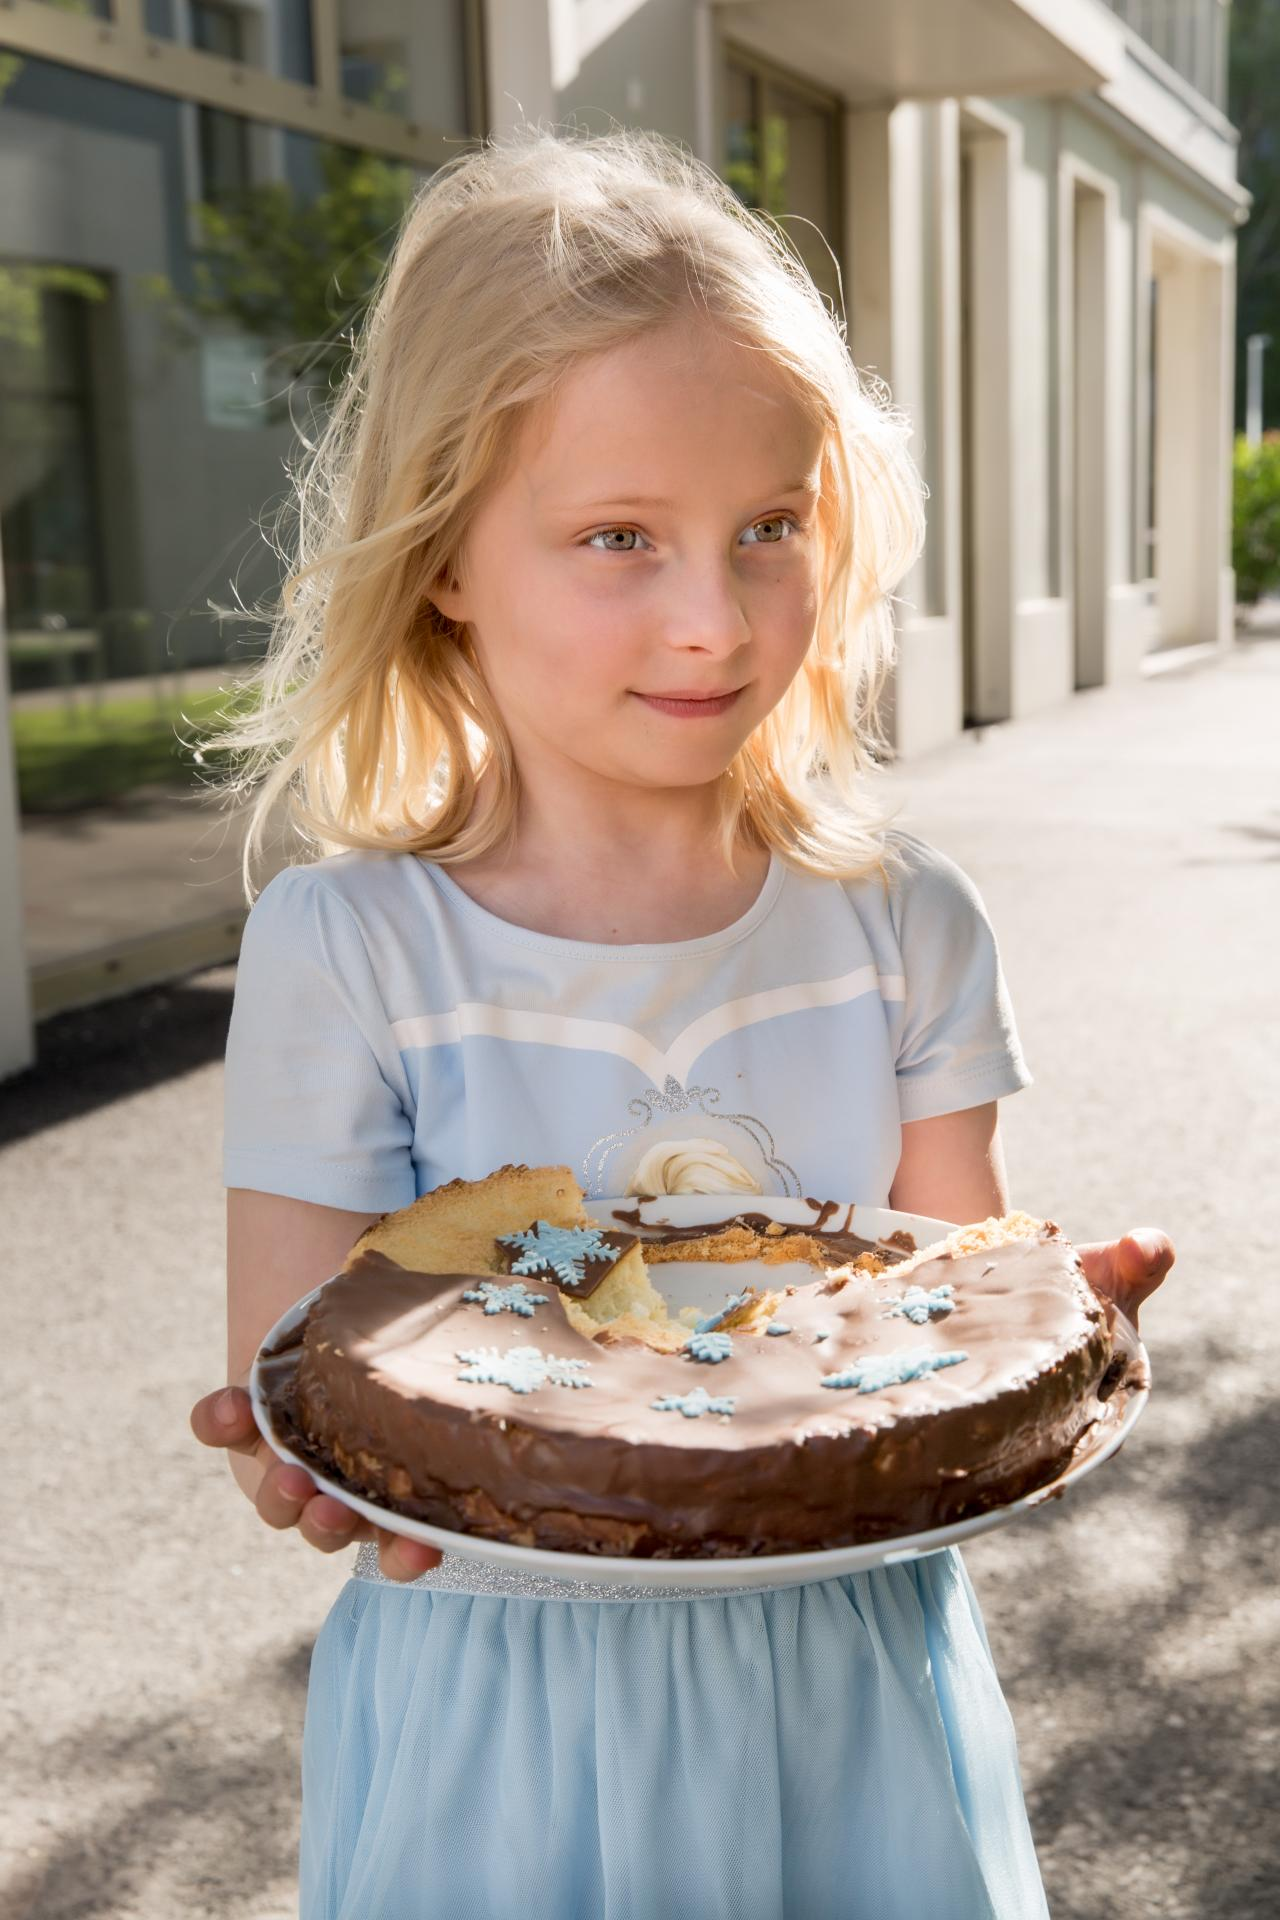 Girl with birthday cake, sunlight